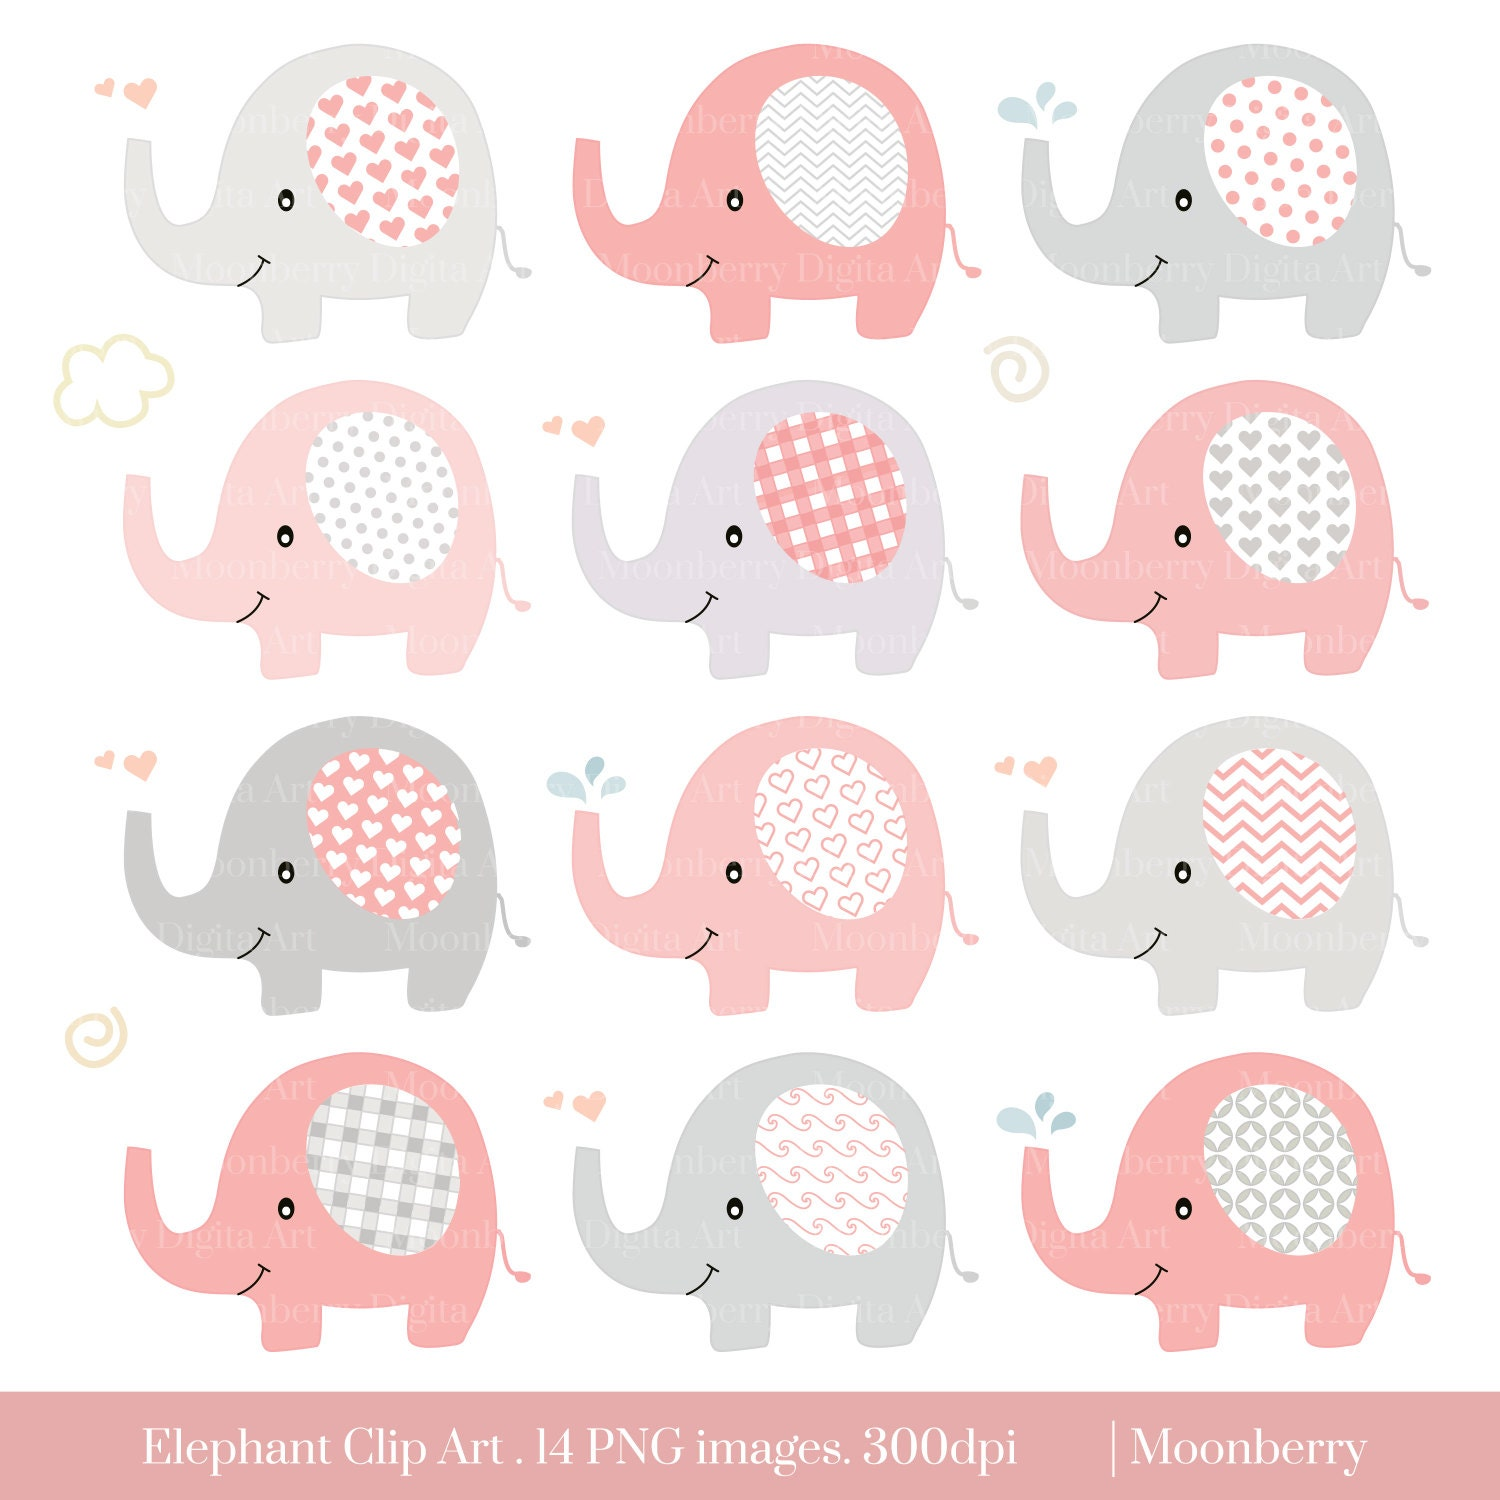 Elephant Clip Art Baby Shower Clipart Pink Elephants Pink Gray